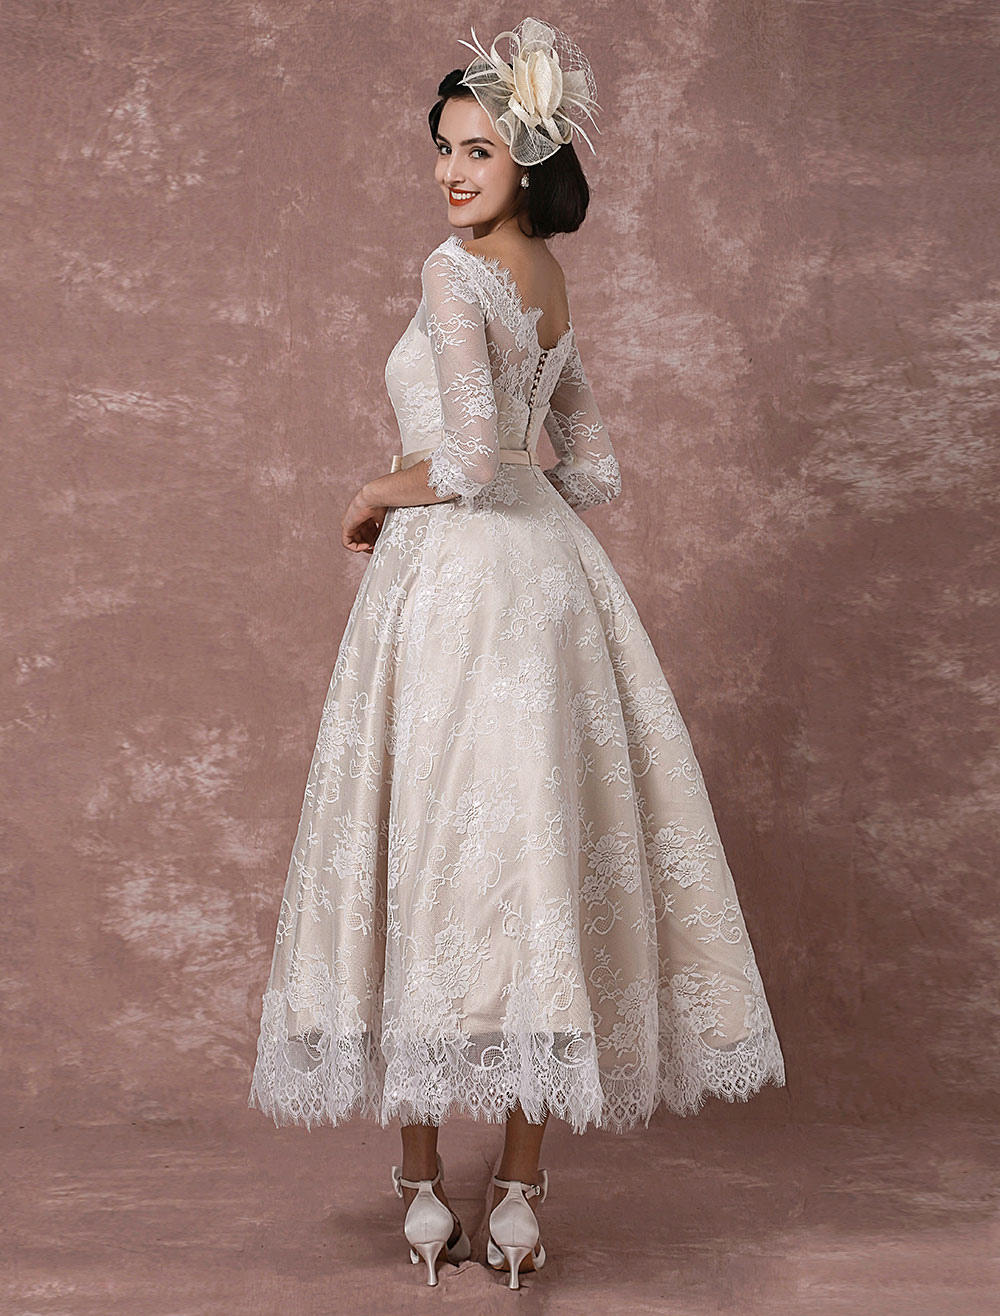 Lace Wedding Dress Vintage Bateau Champagne Half Sleeves Bridal Gown